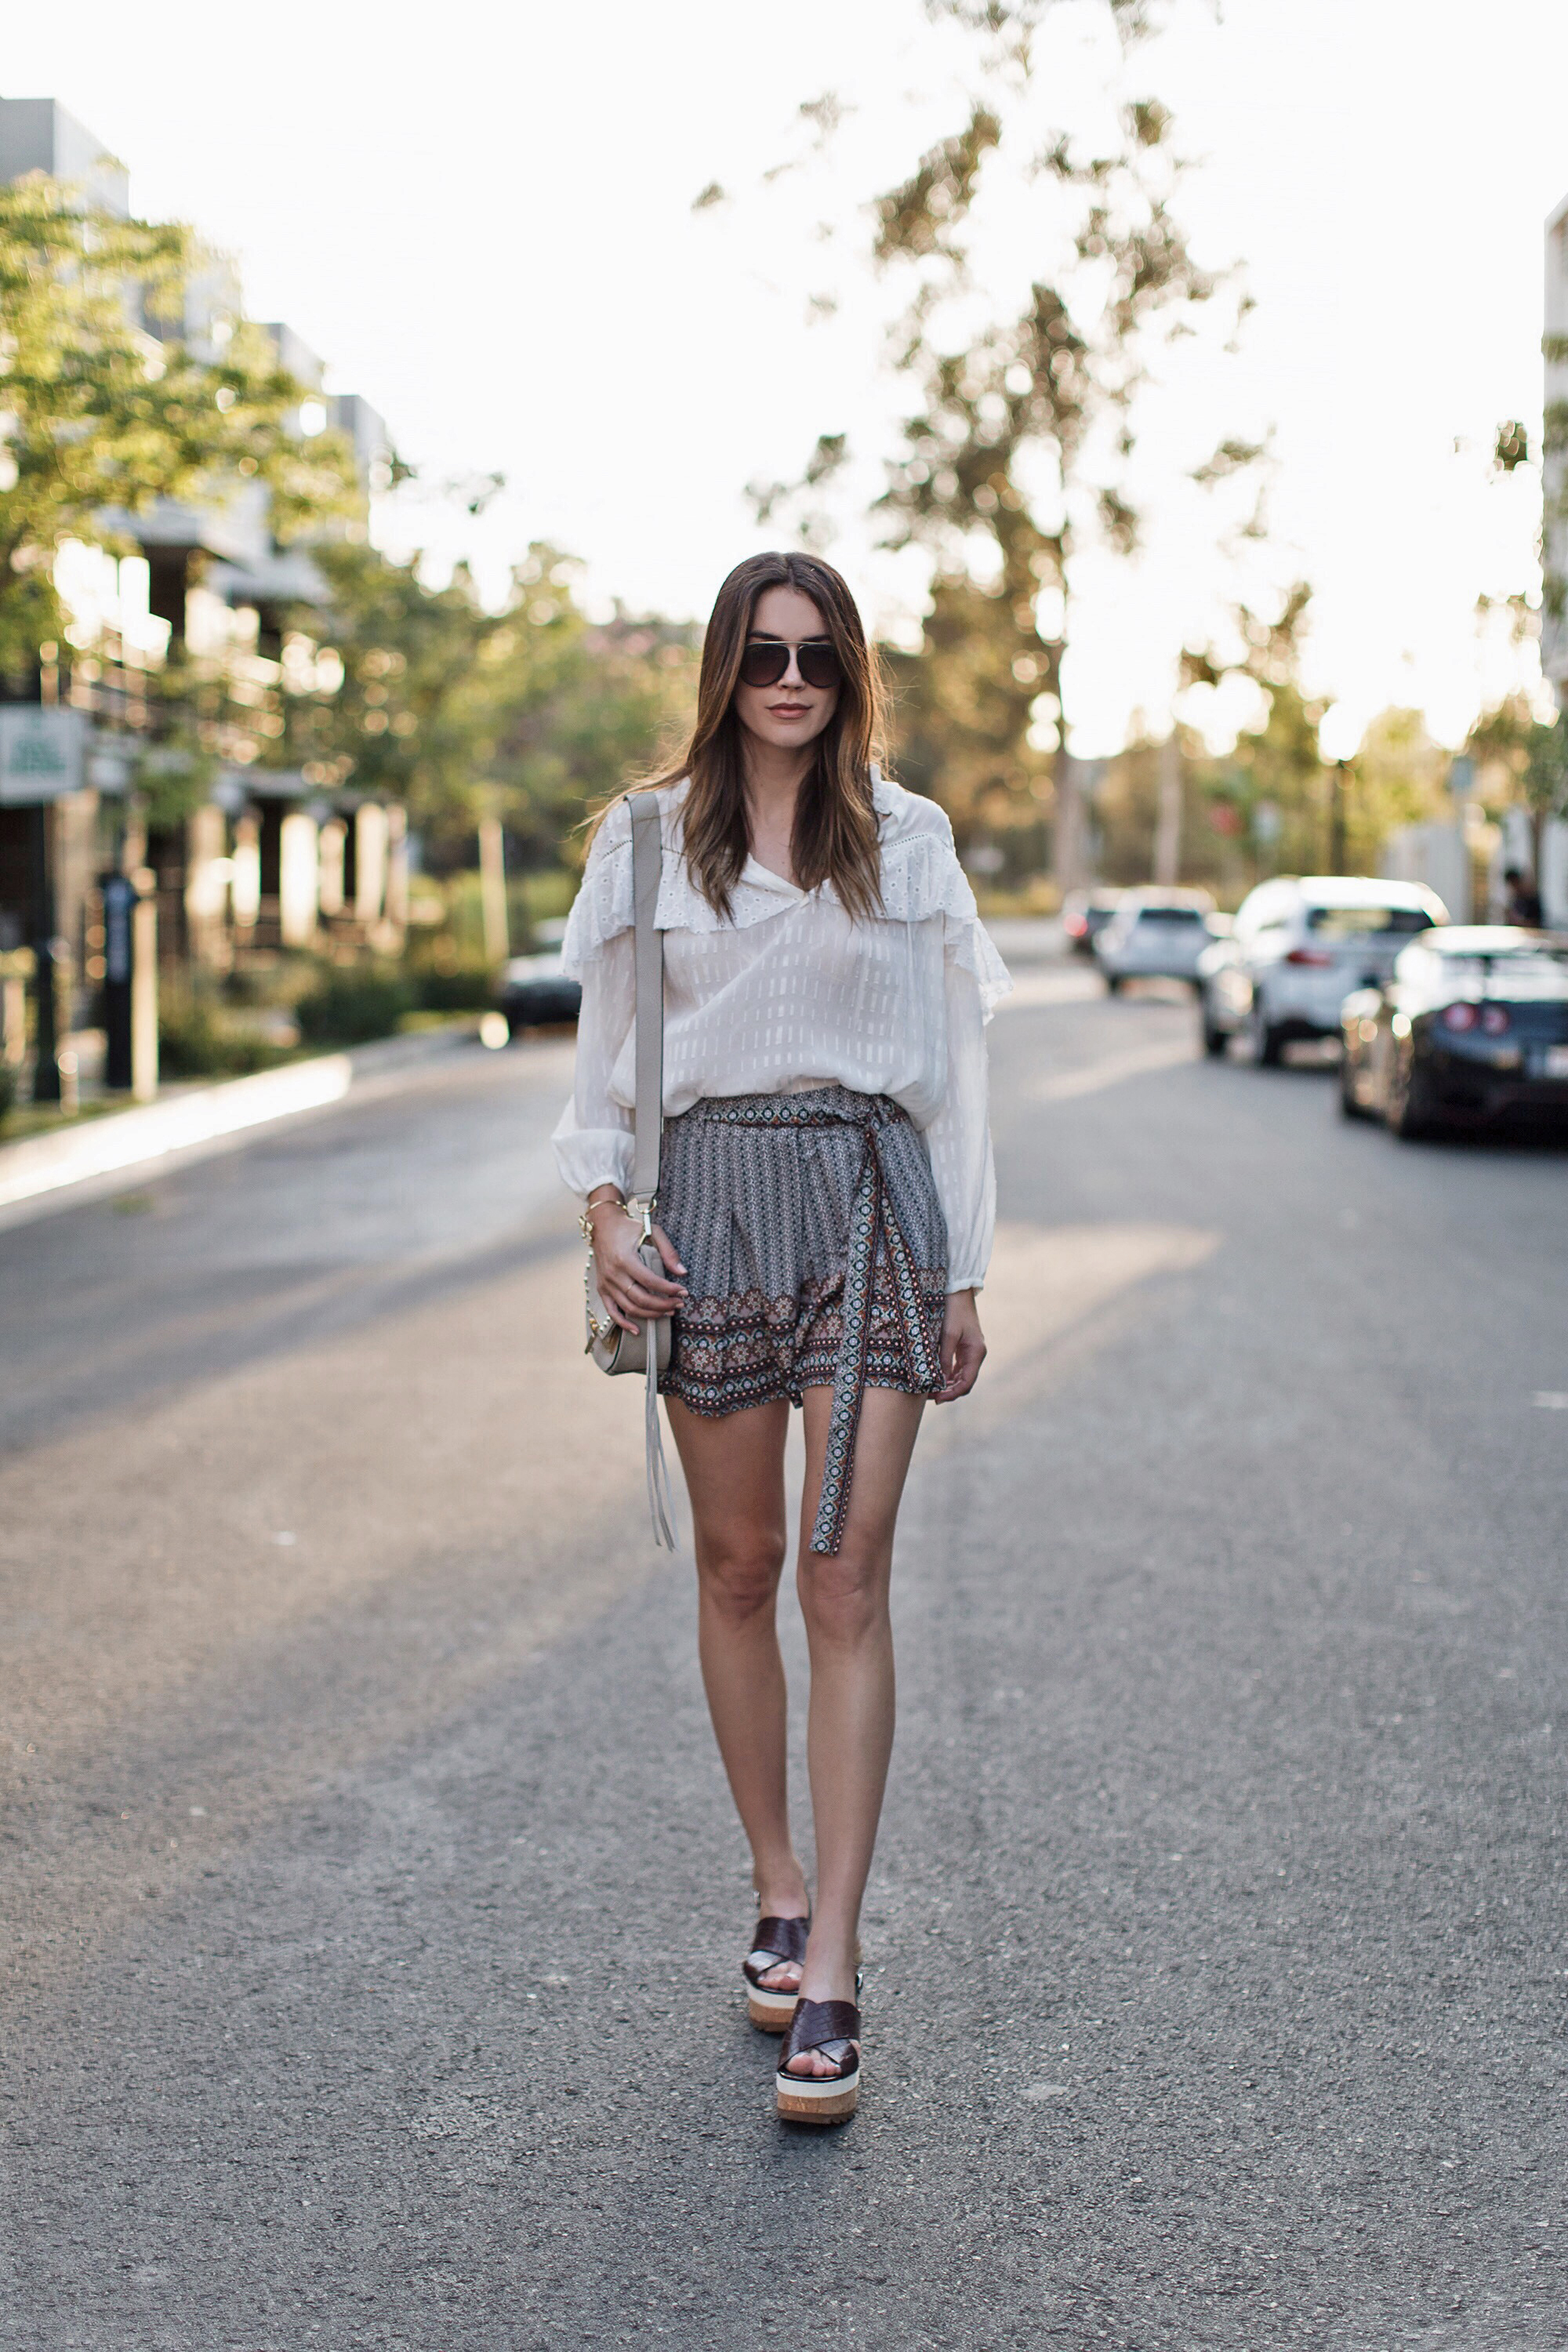 Tie Shorts Ruffled Blouse Flatform Sandals